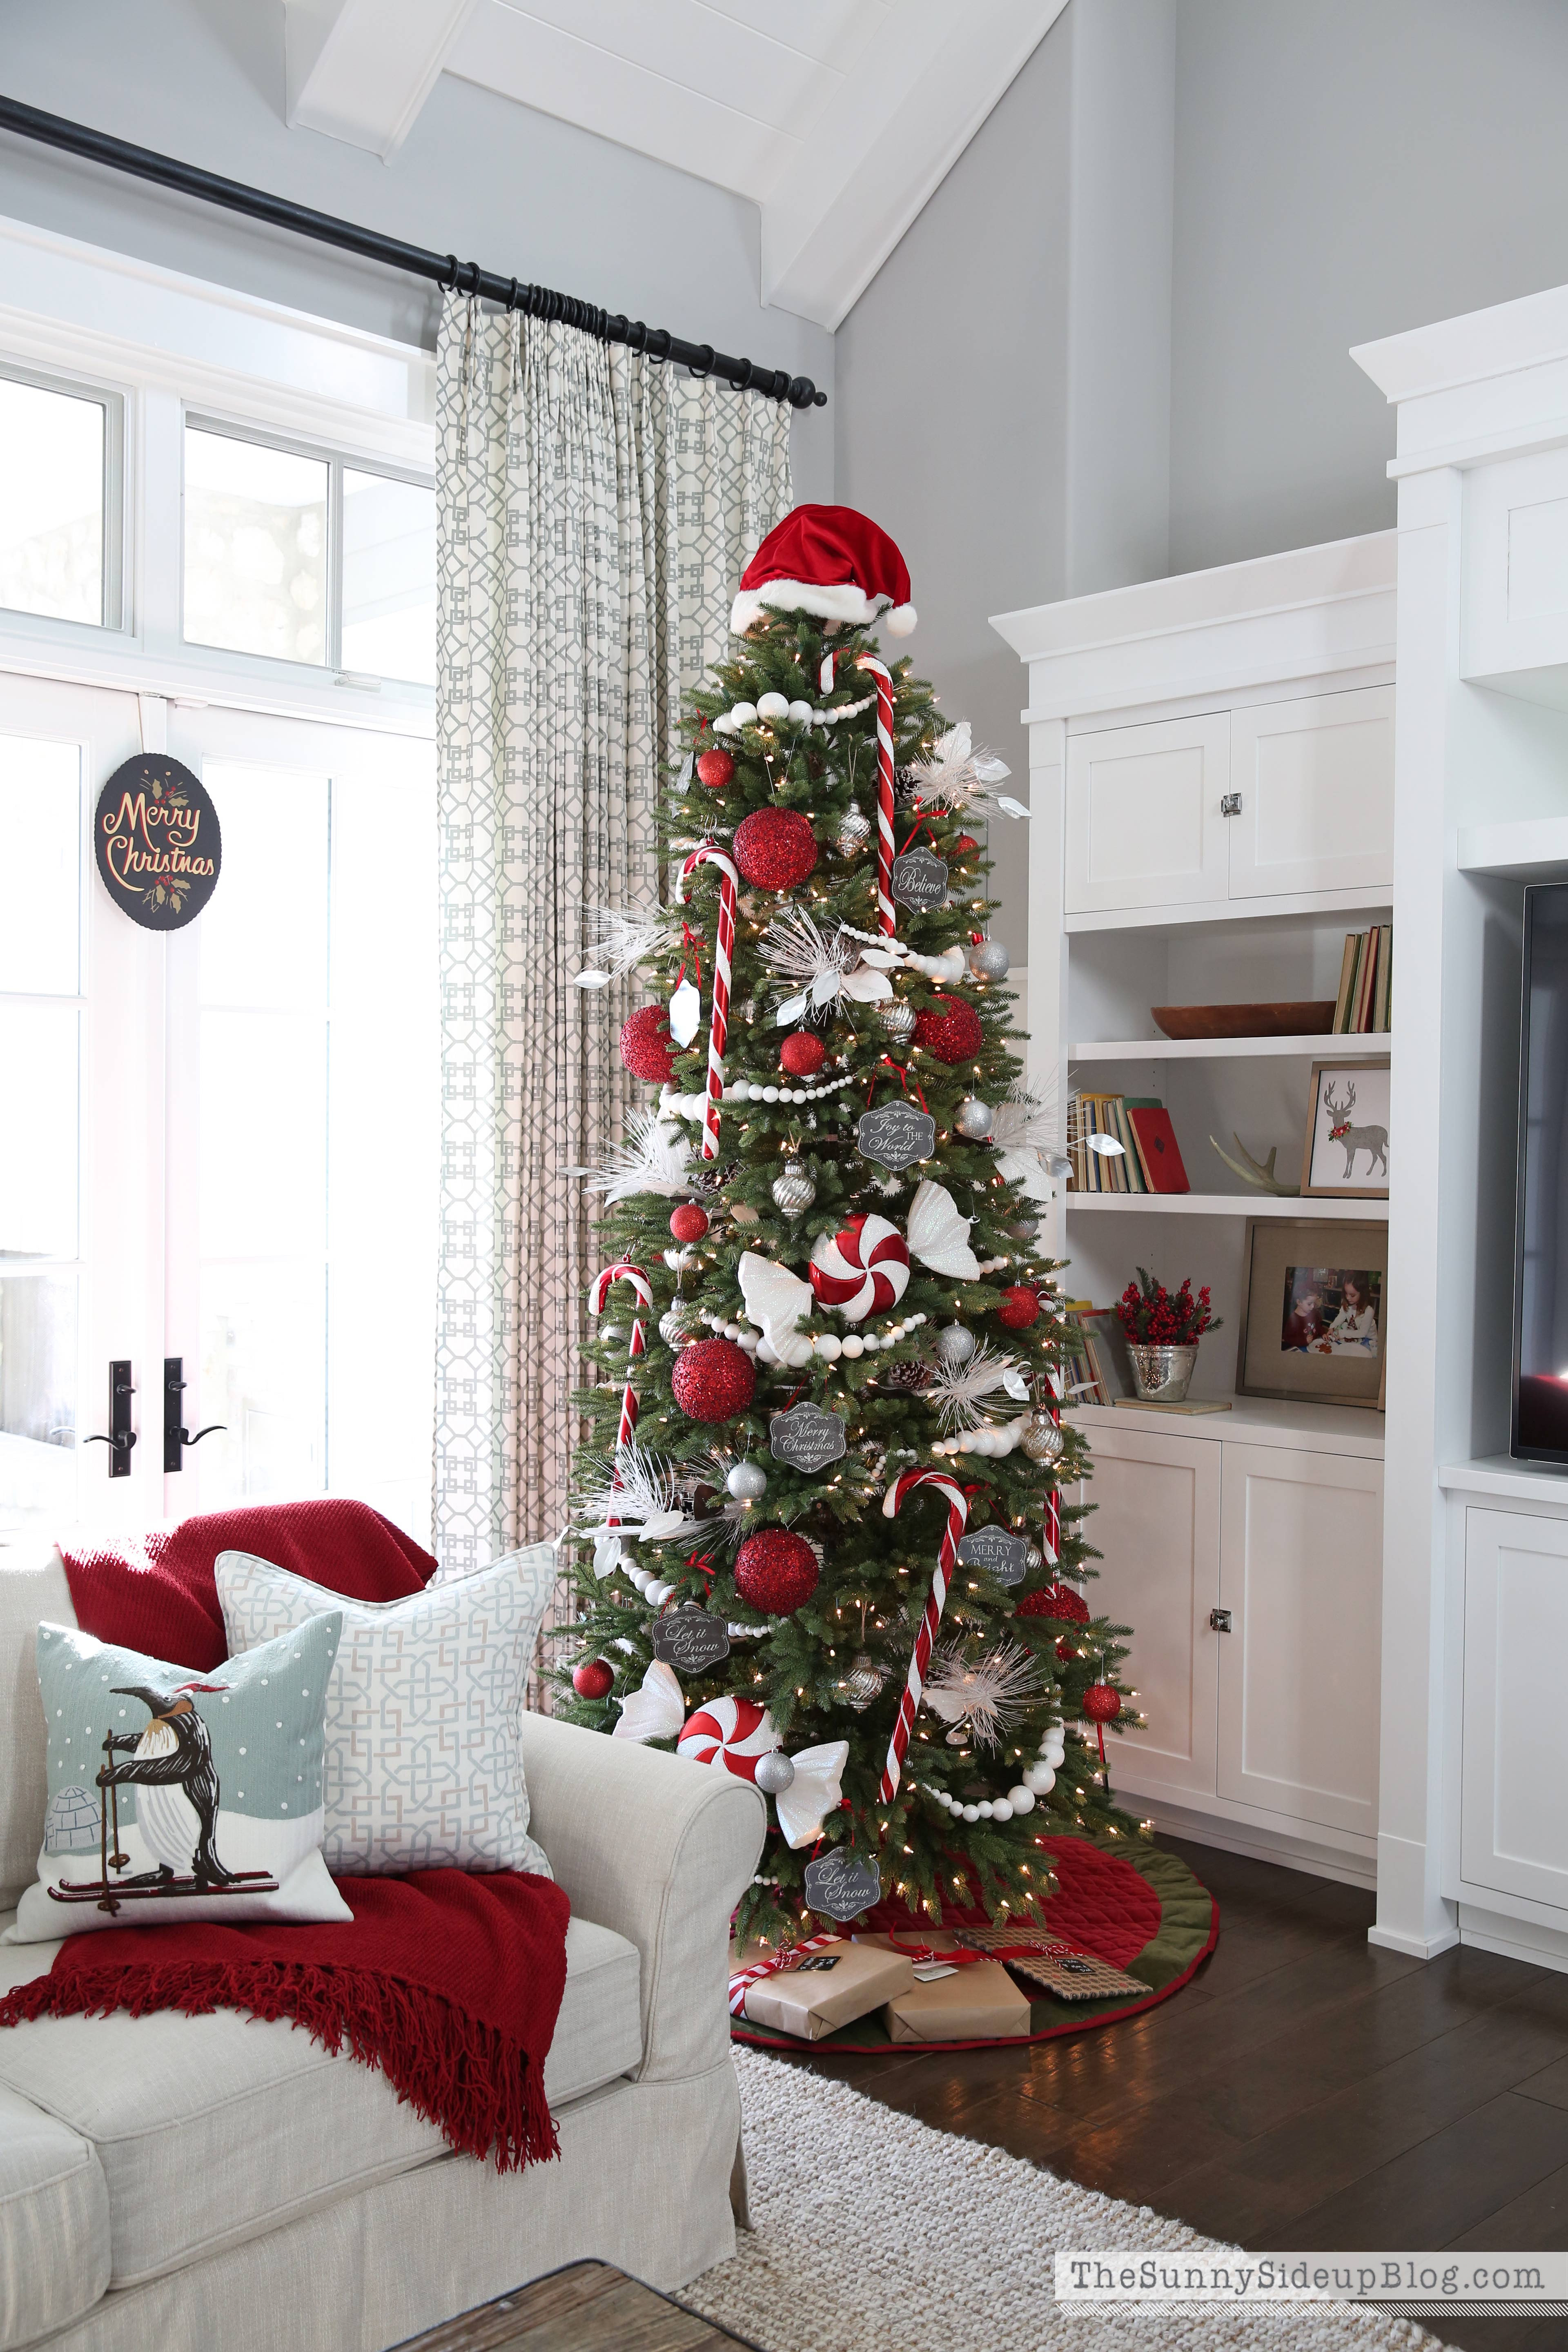 Candy Cane Christmas Tree  Magnolia Lane Christmas Tour The Sunny Side Up Blog